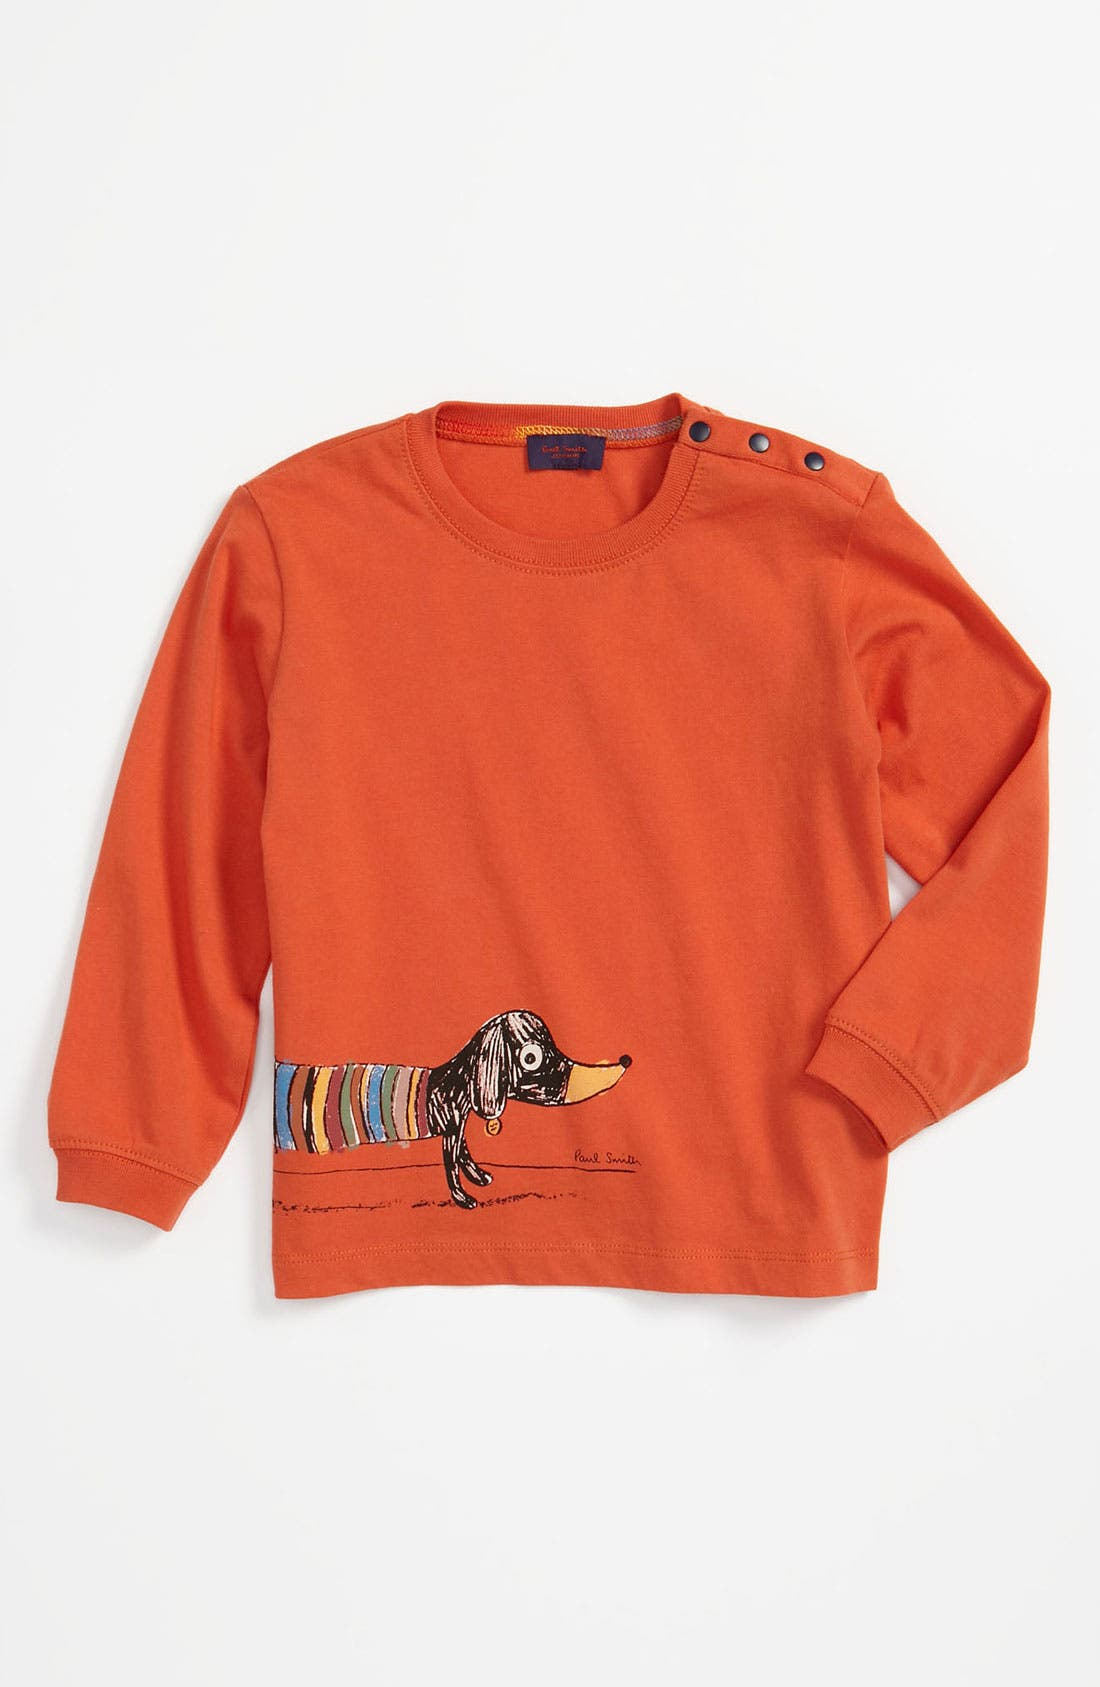 Alternate Image 1 Selected - Paul Smith Junior 'Camillo' T-Shirt (Infant)